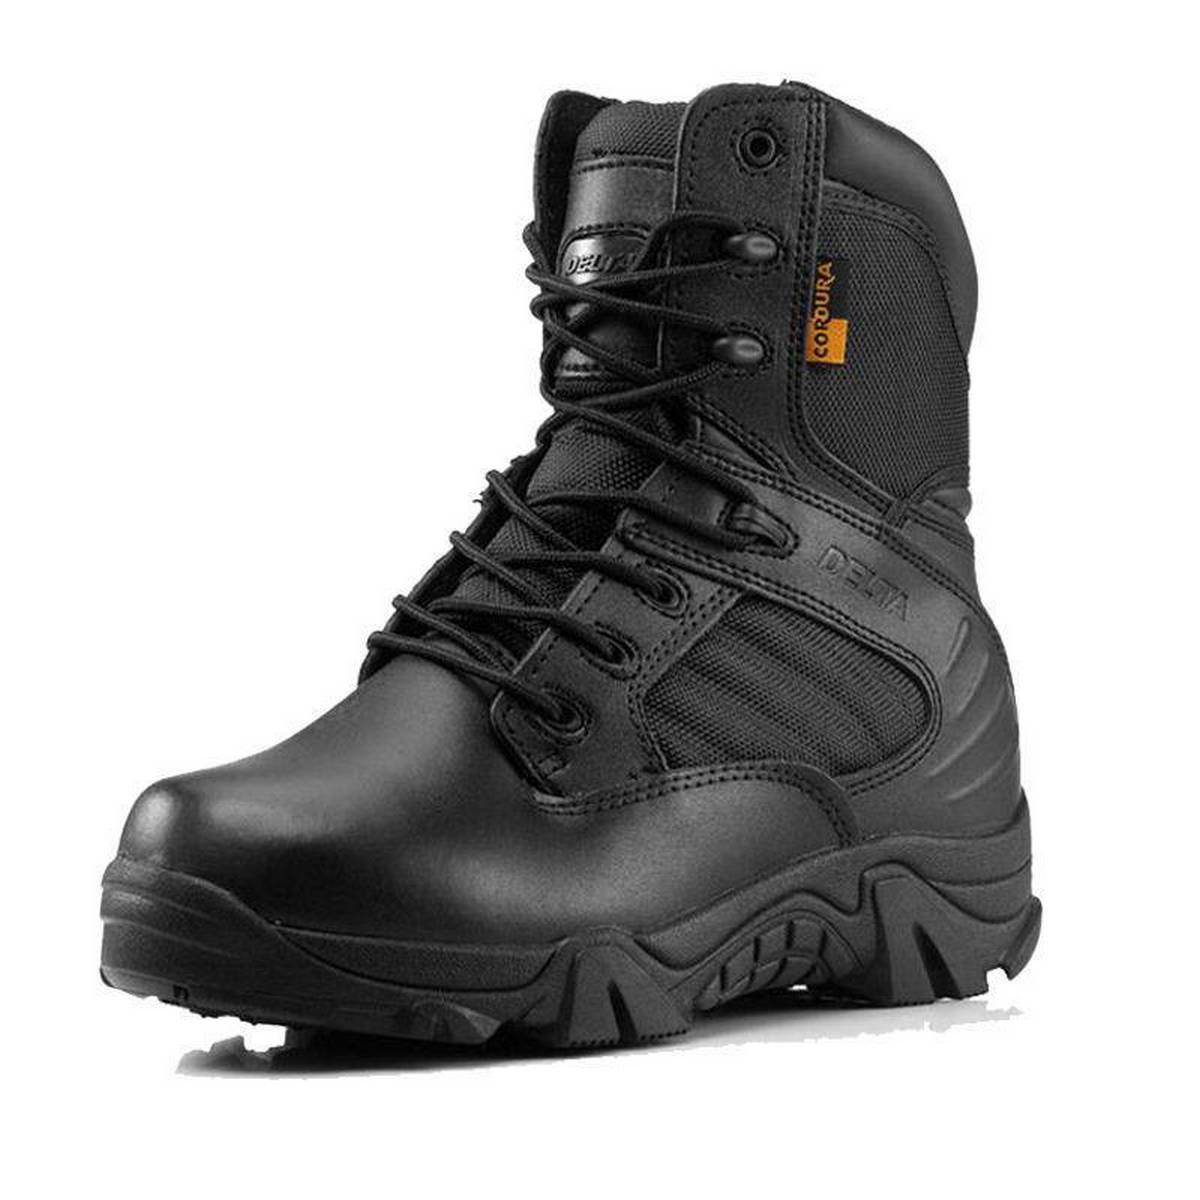 Delta Men New Military Tactics Ankle Boots Desert Combat Army Hiking Hiking Shoes Black